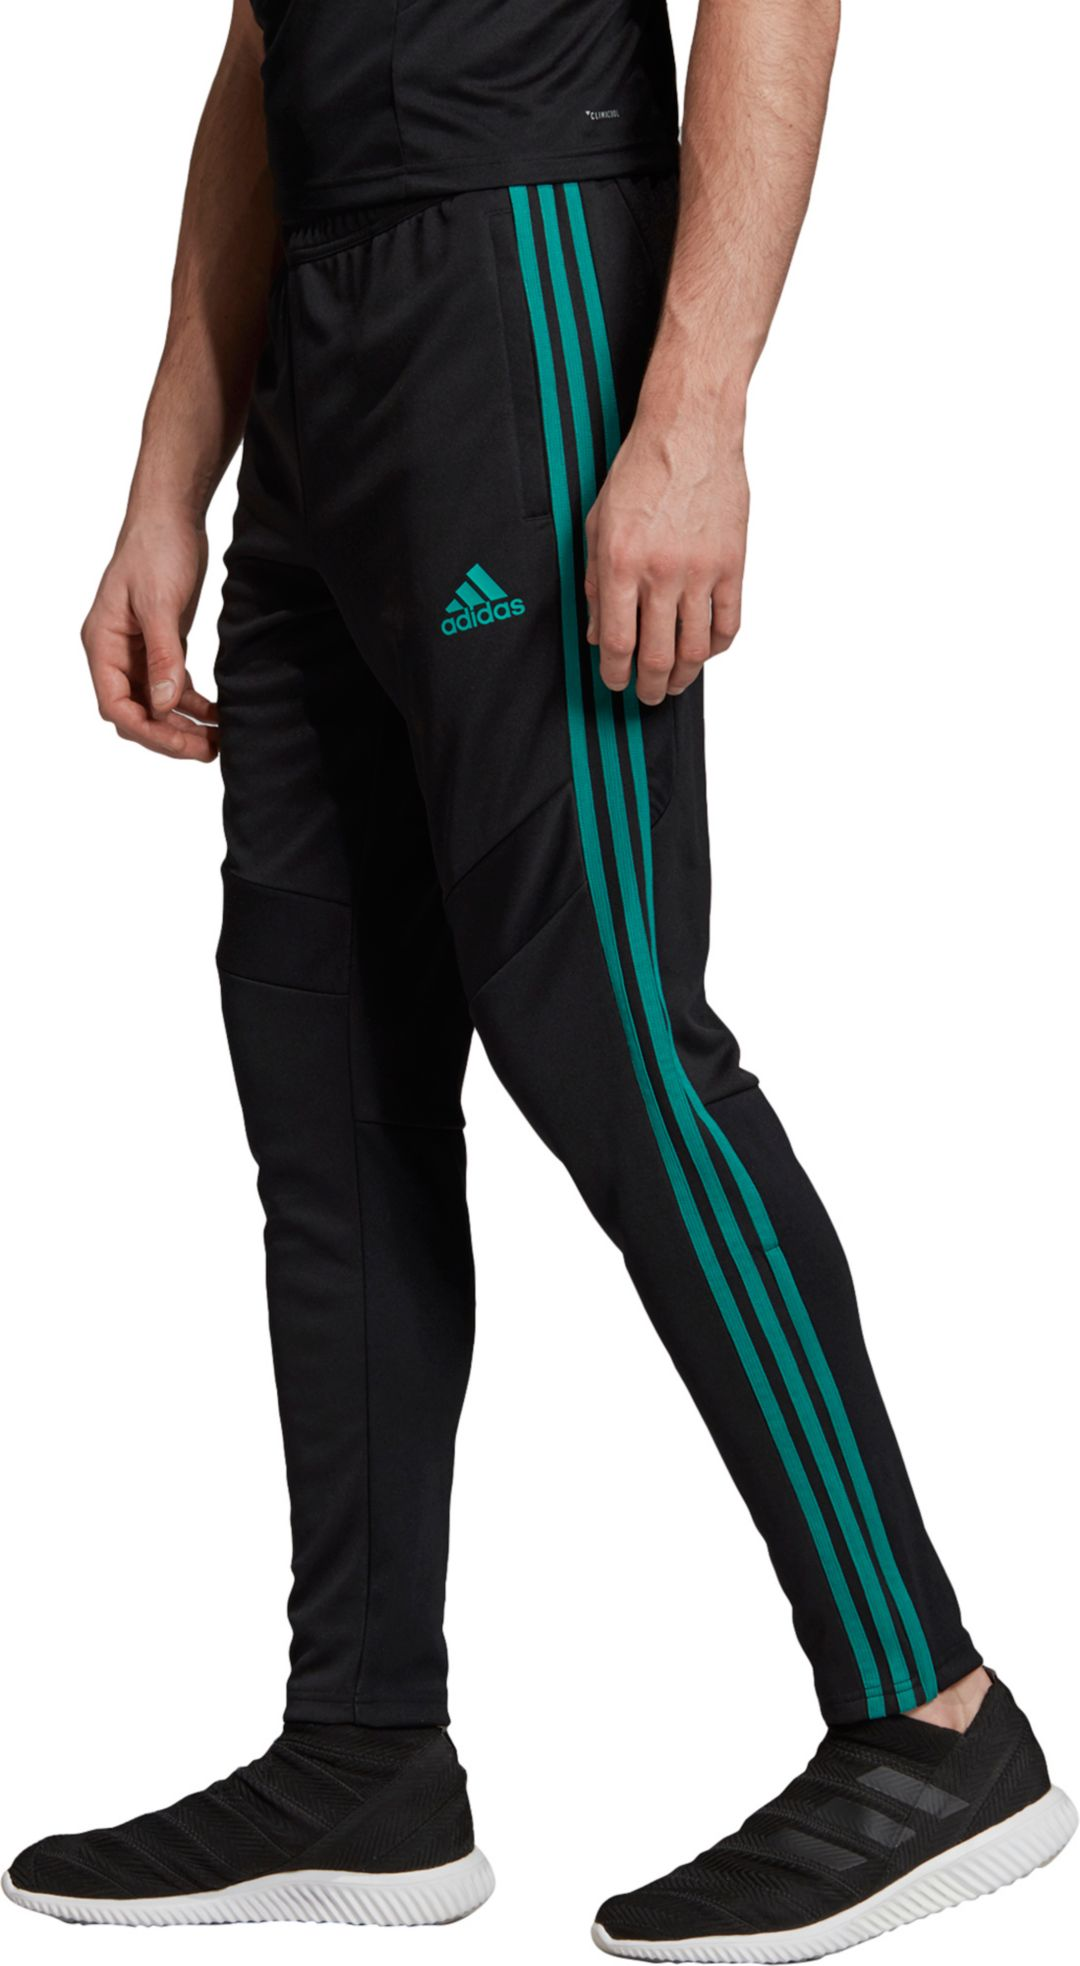 adidas Men's Tiro 19 Training Pants | DICK'S Sporting Goods